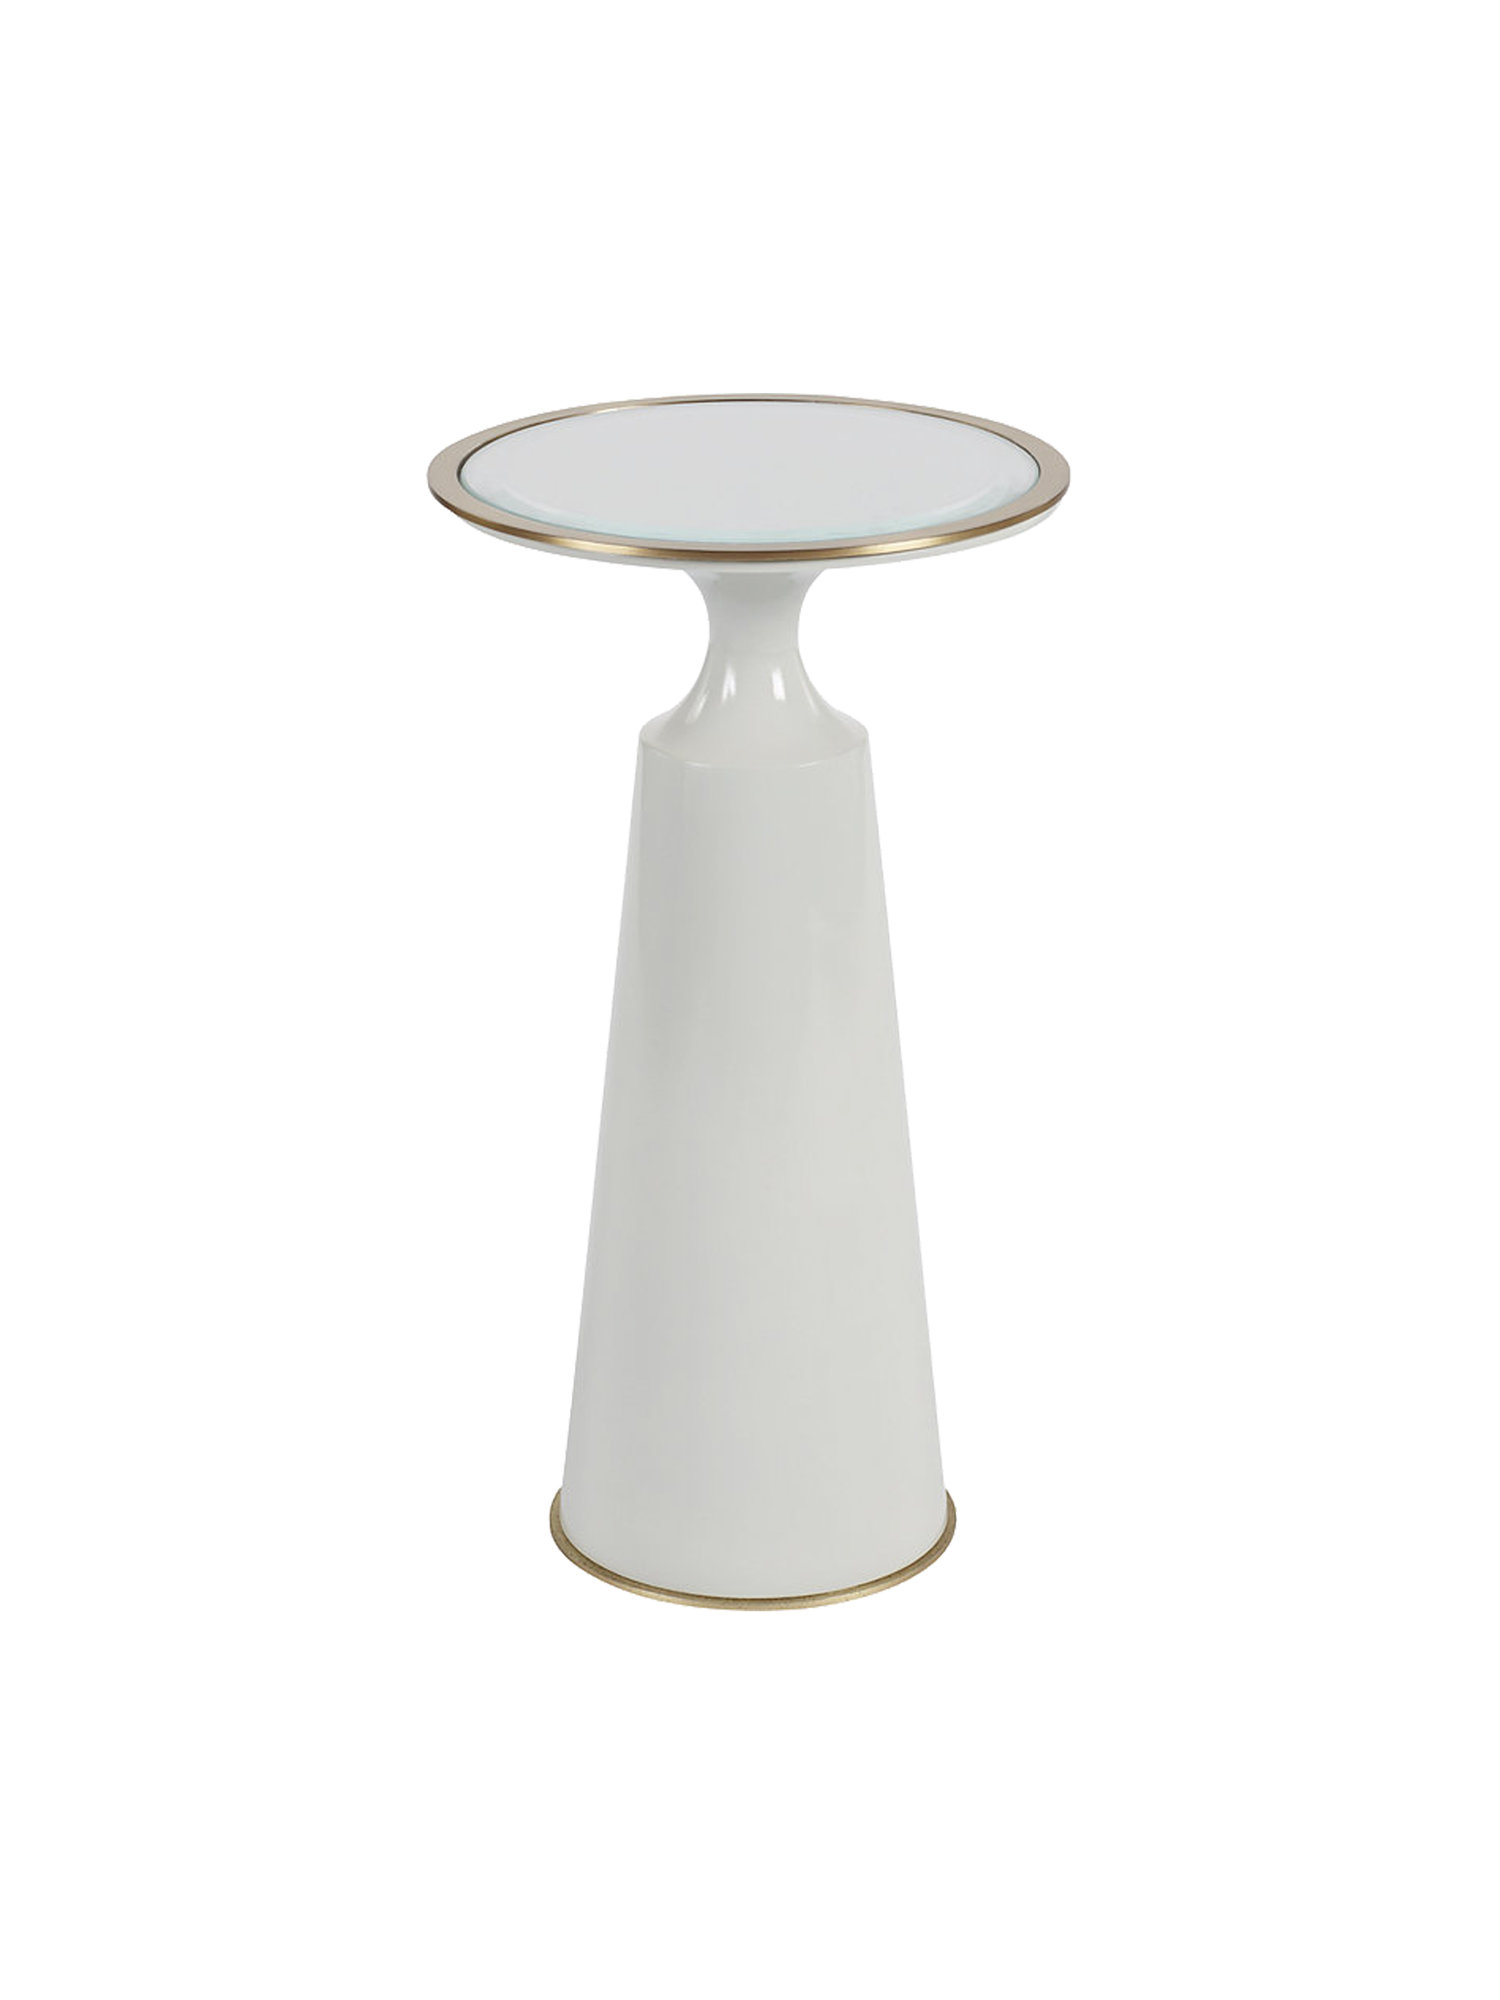 post putnam and mason viridine ivory round accent table heaters telephone seat pier one counter stools metal height sheesham wood furniture parasol verizon tablet roberts hooker